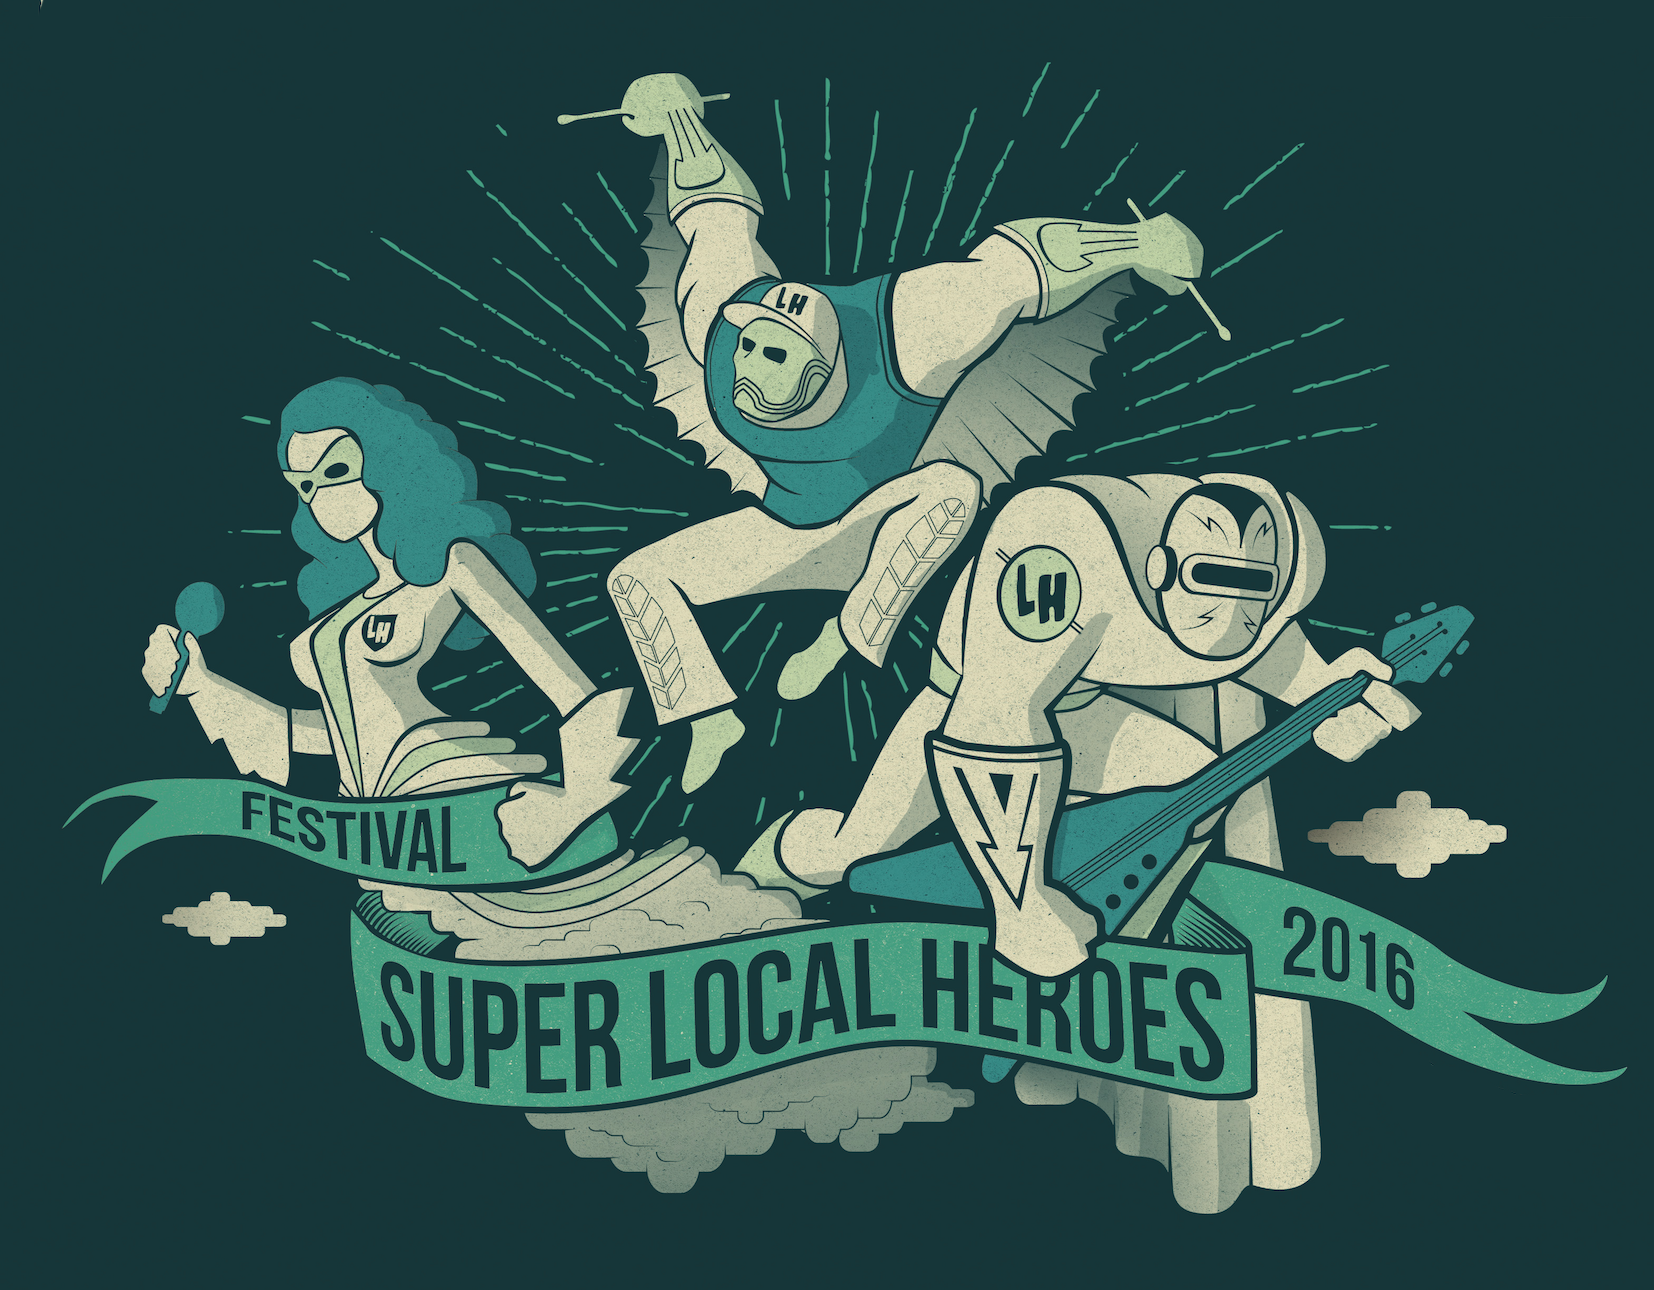 Super Local Heroes 2016